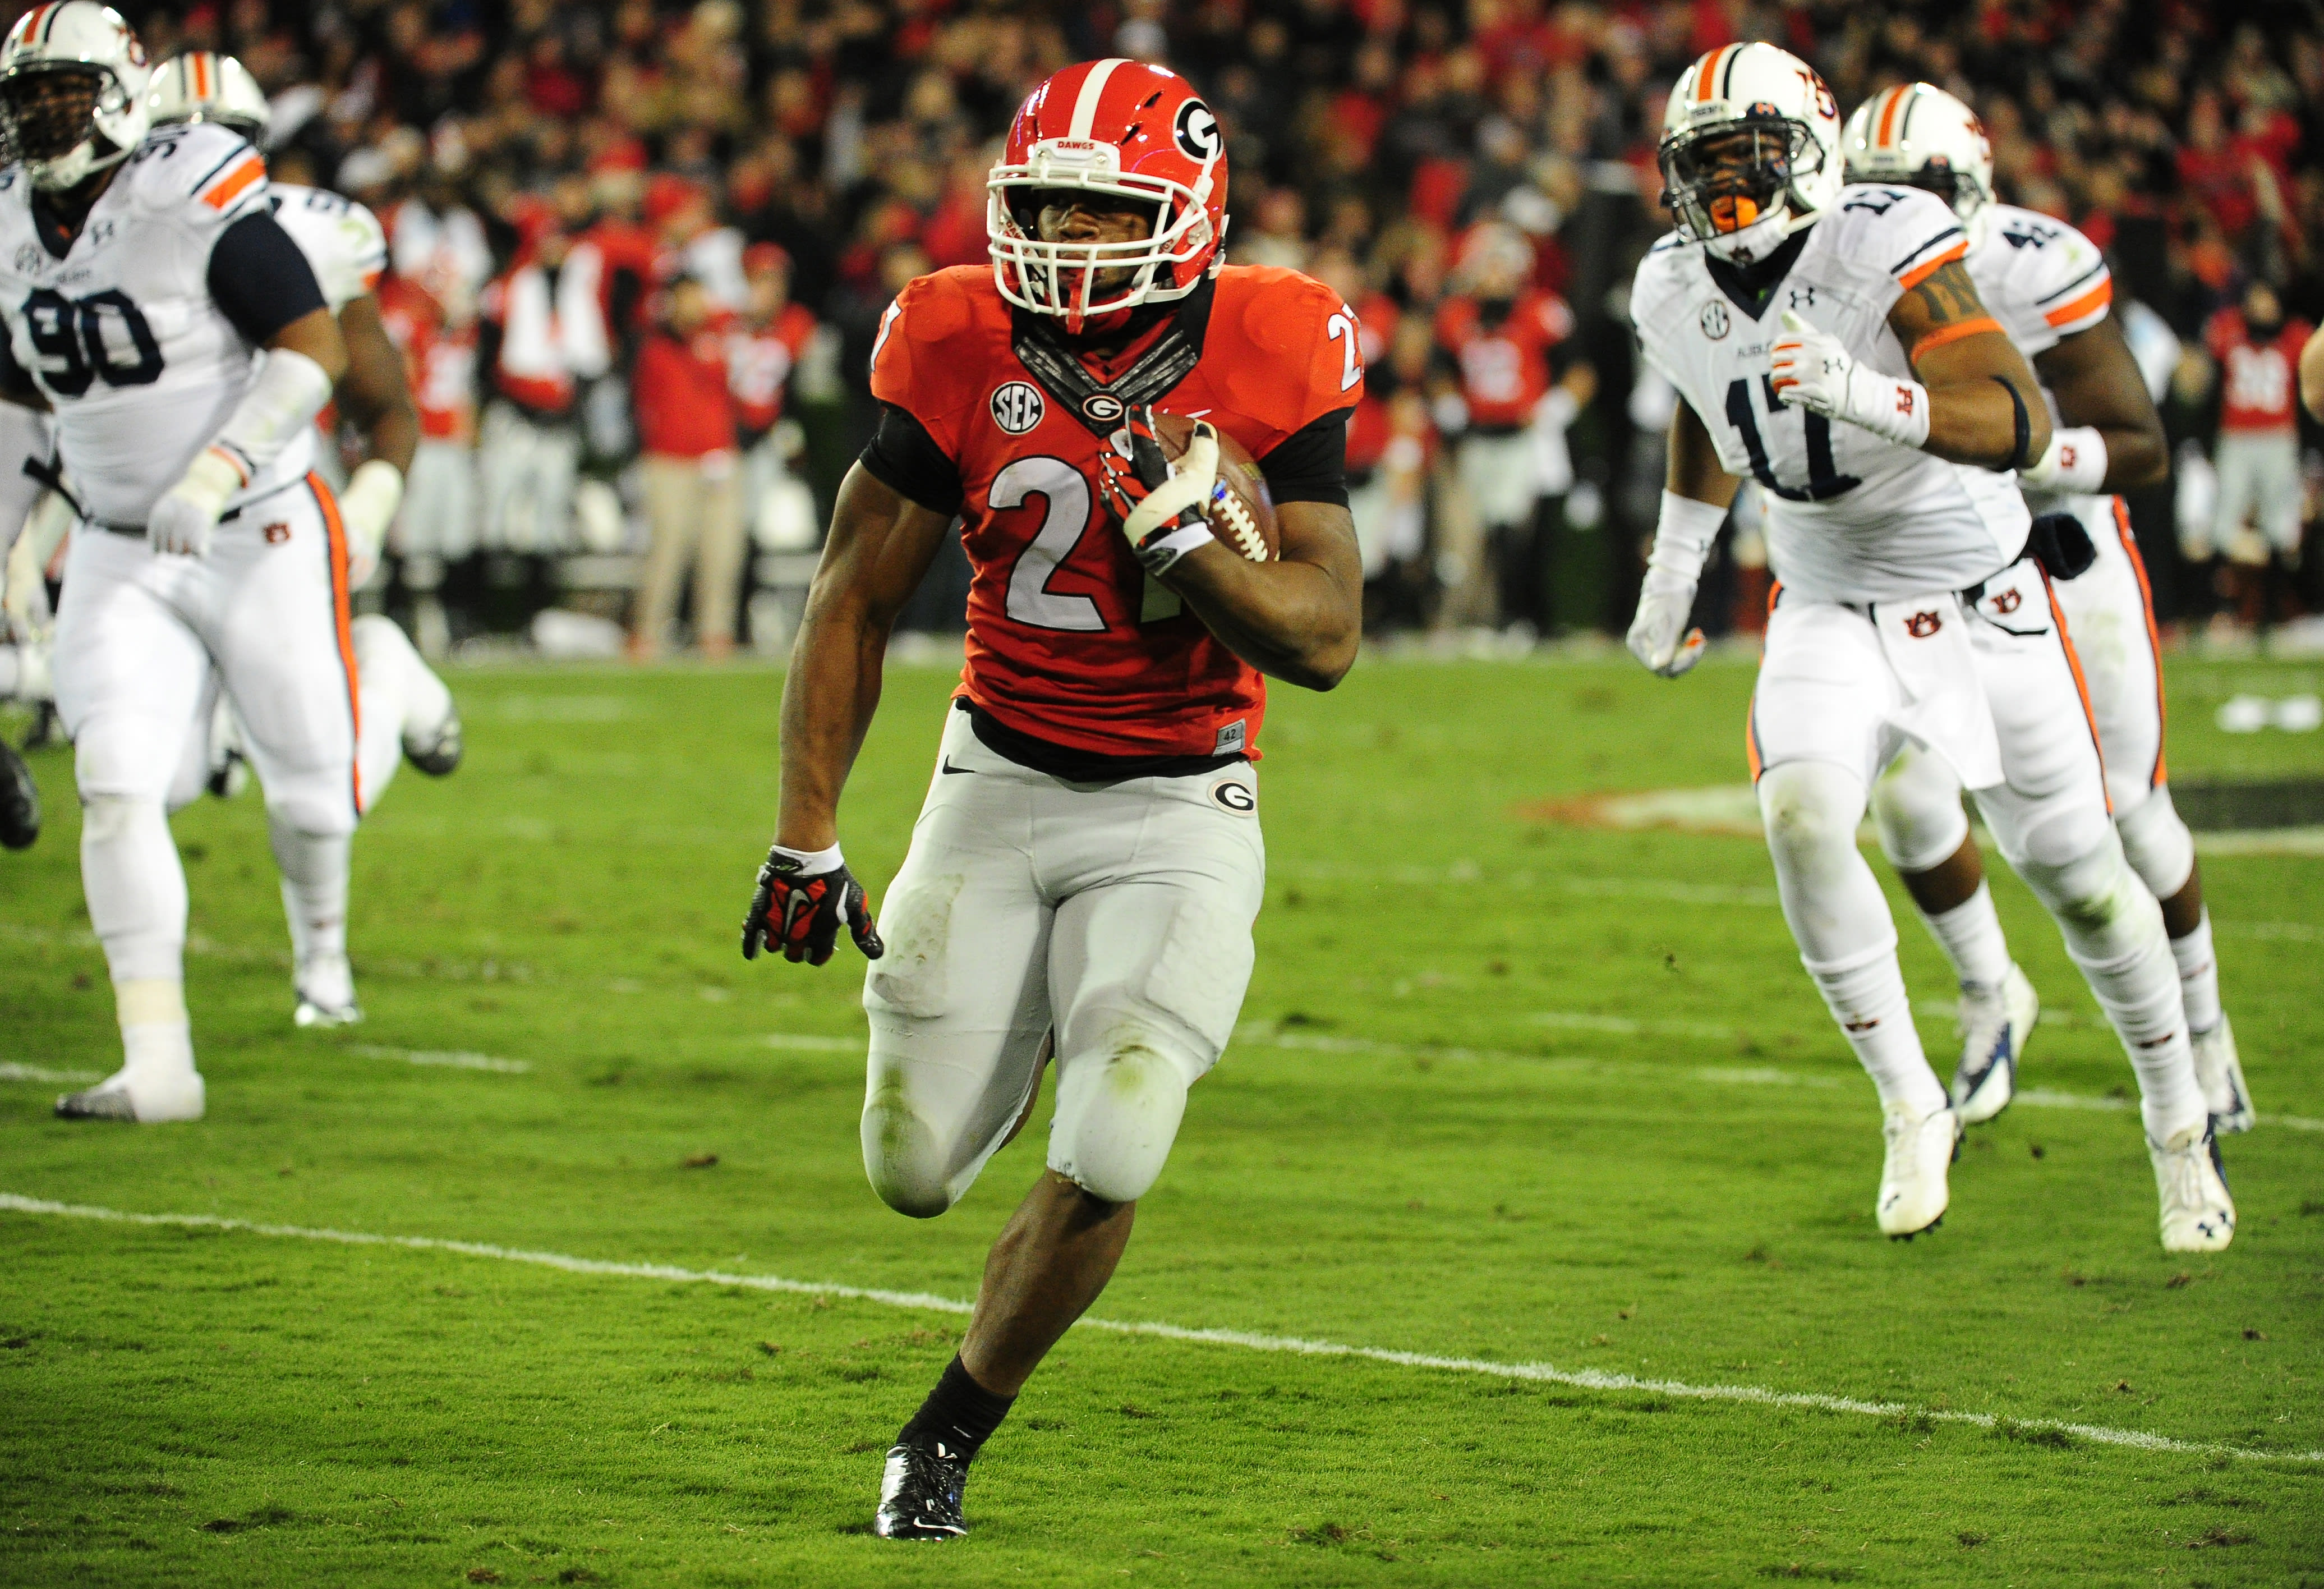 Georgia Football Projected 2 Deep Depth Chart For 2017 Page 6